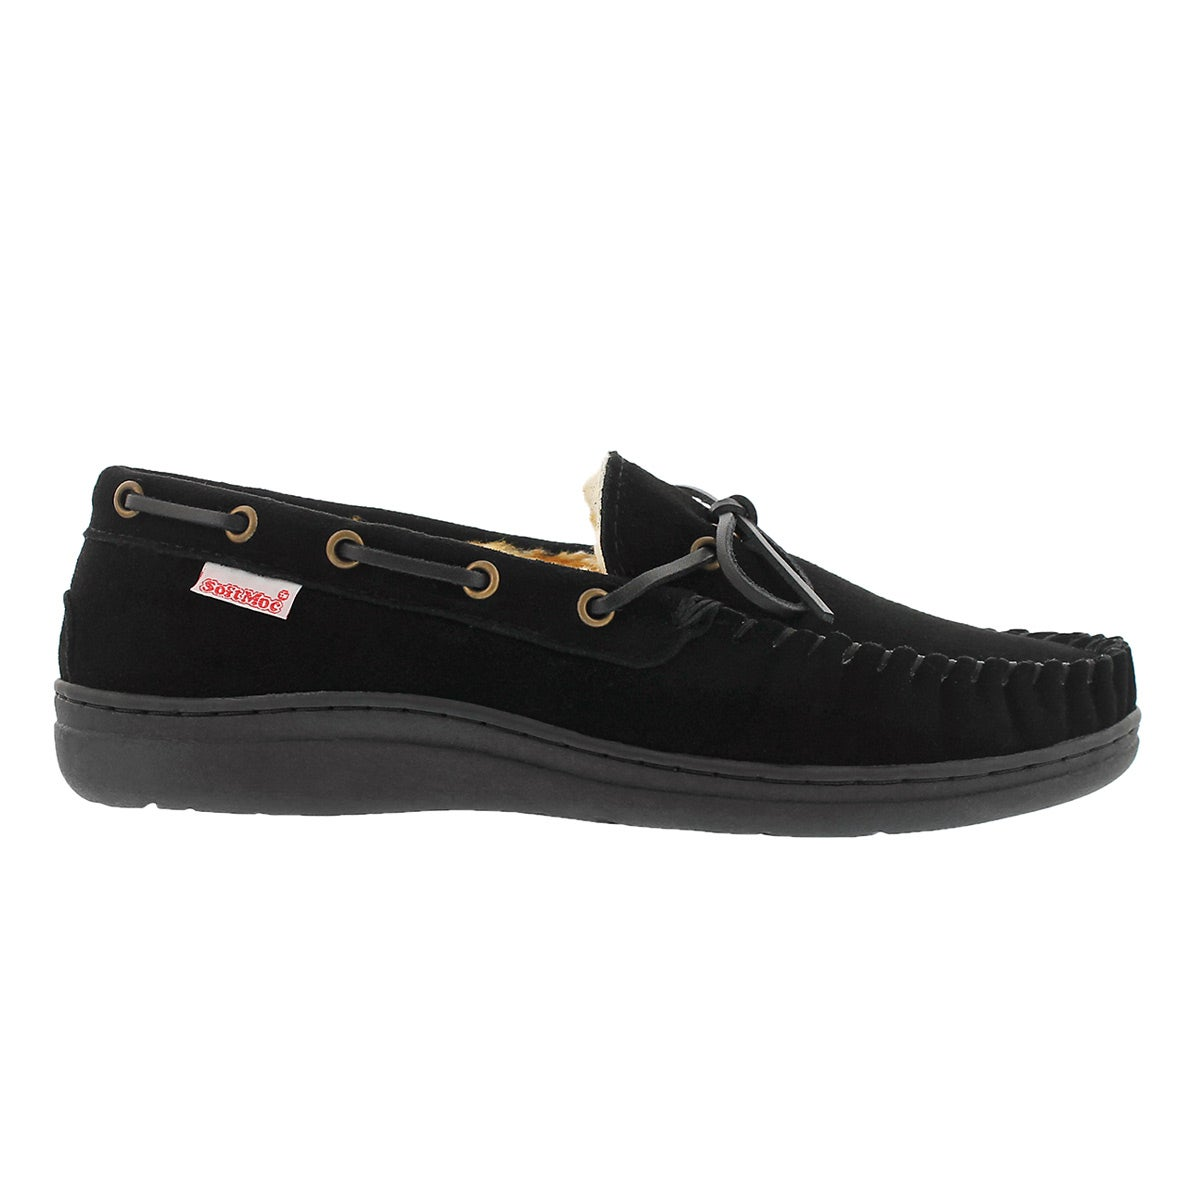 Mns Duke II black lined suede mocc